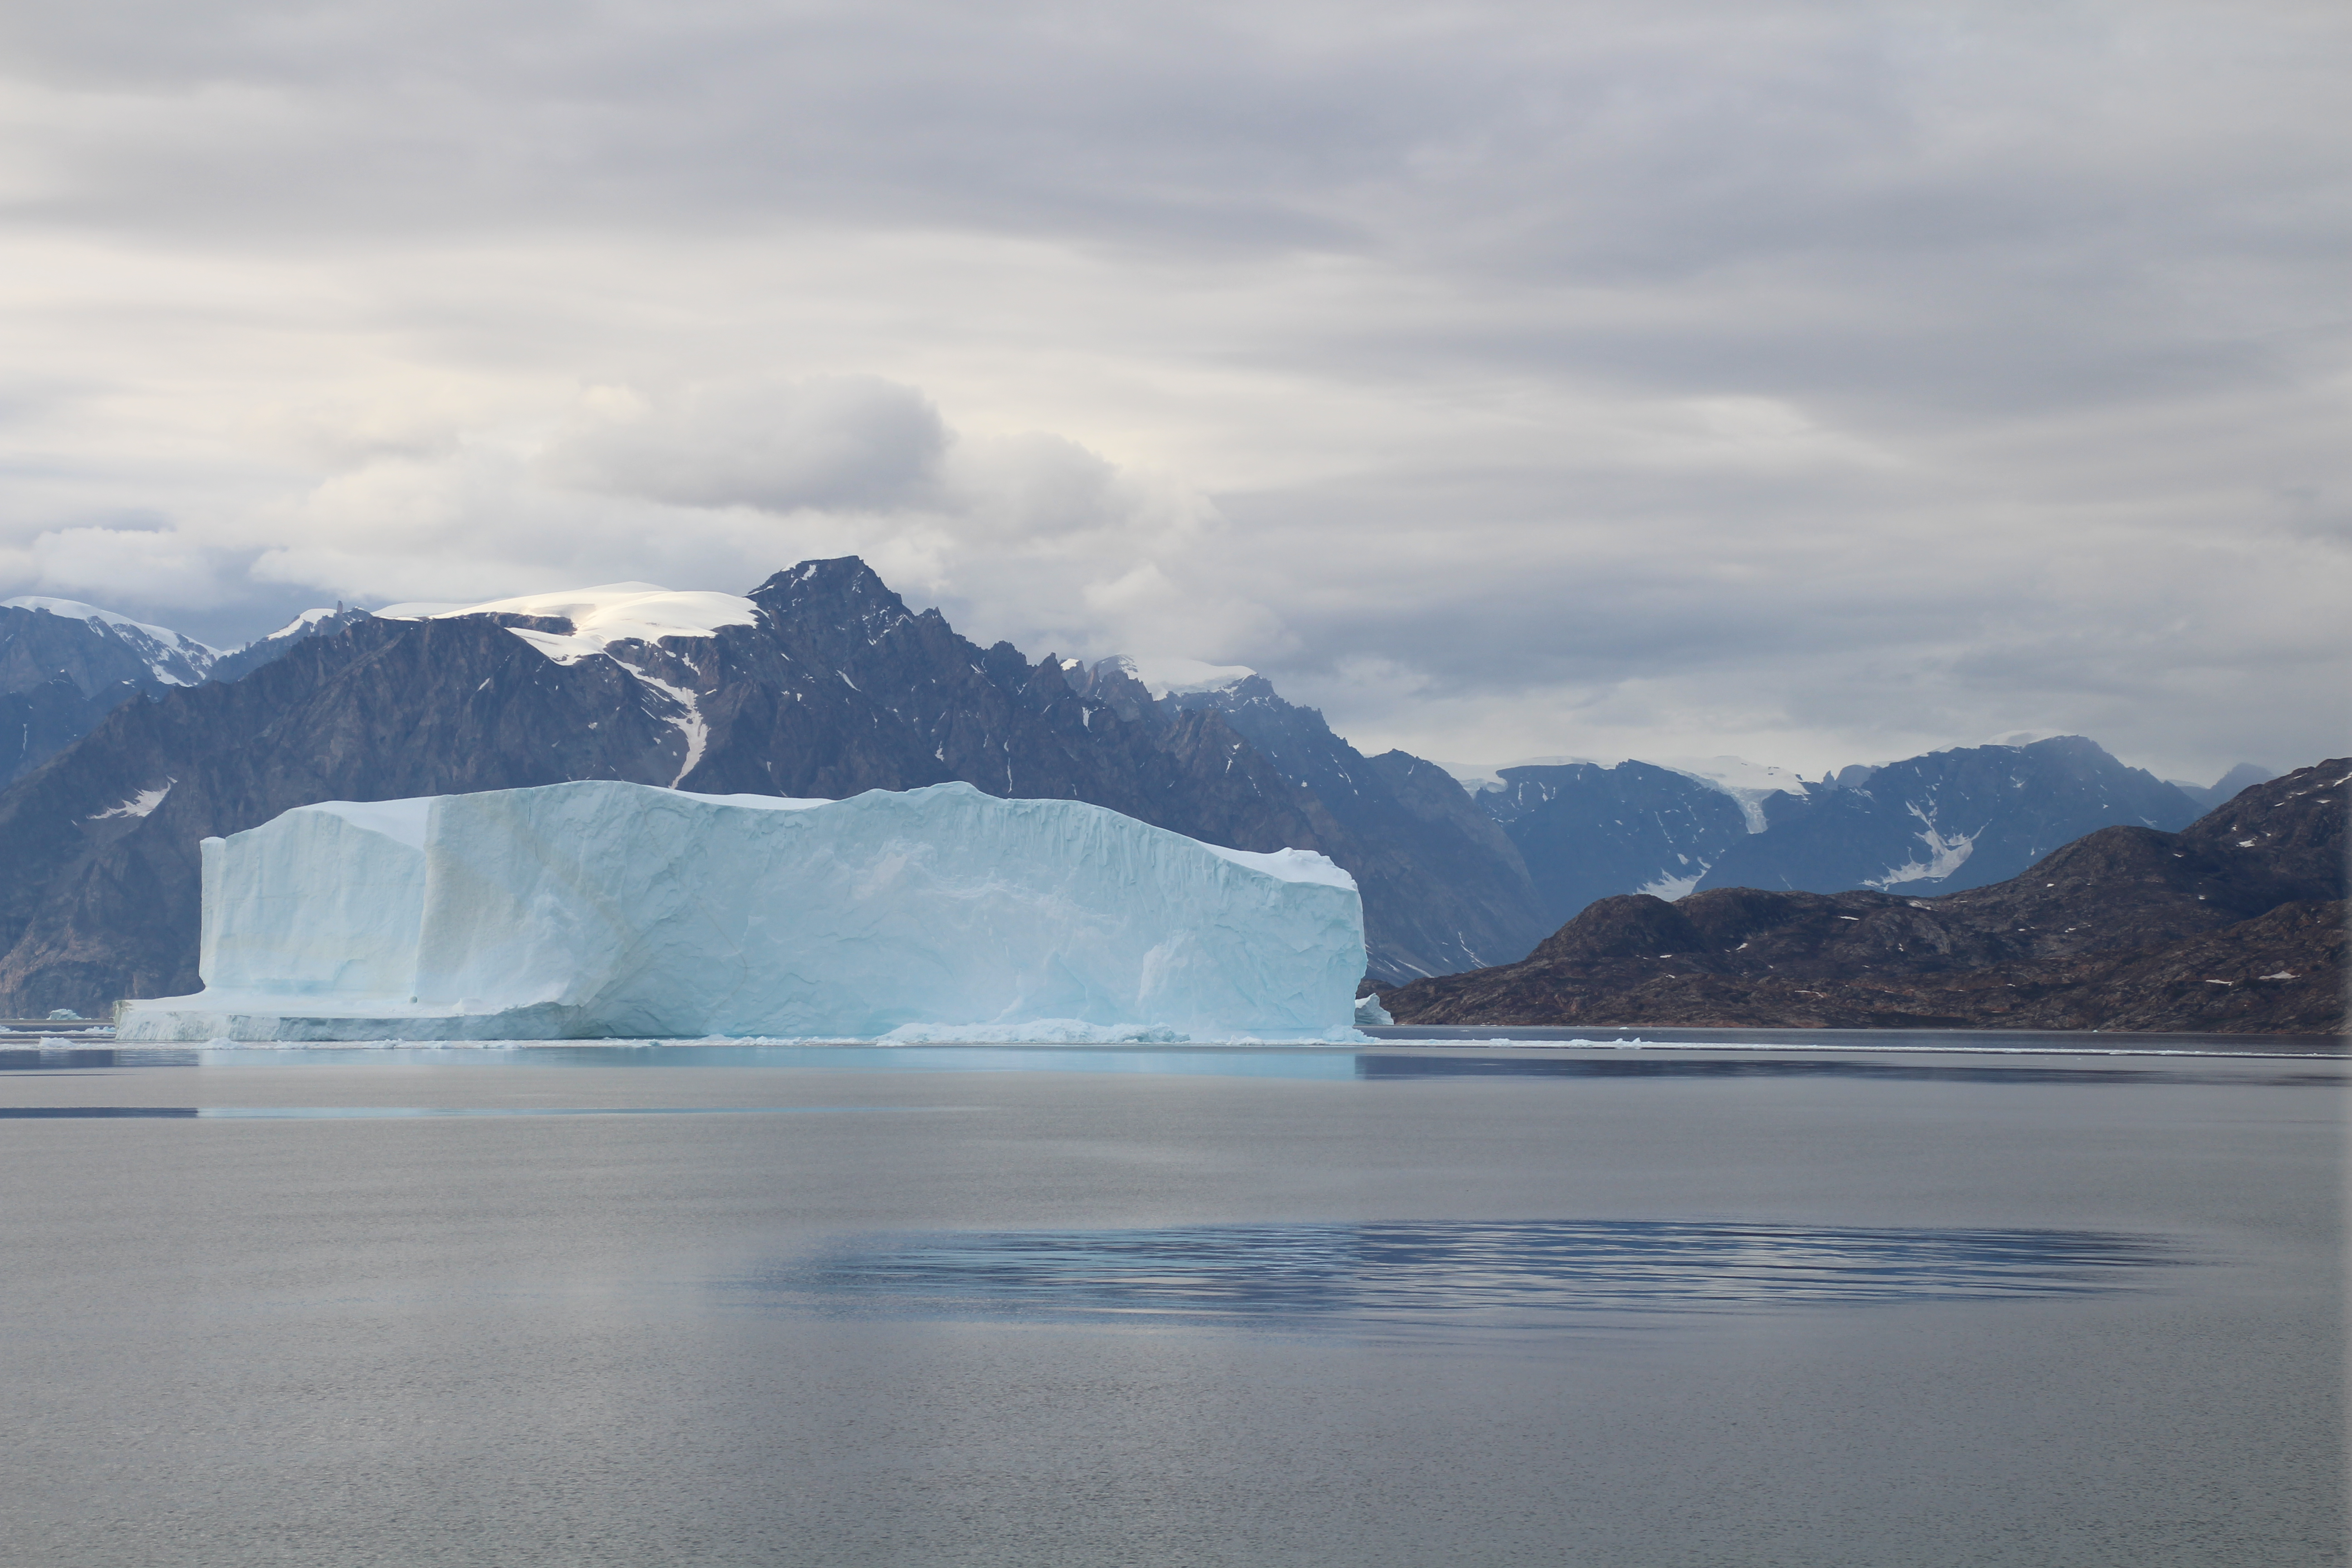 August 21, 4:54pm, Scoresby Sound Greenland. Photo by Dragonfly Leathrum